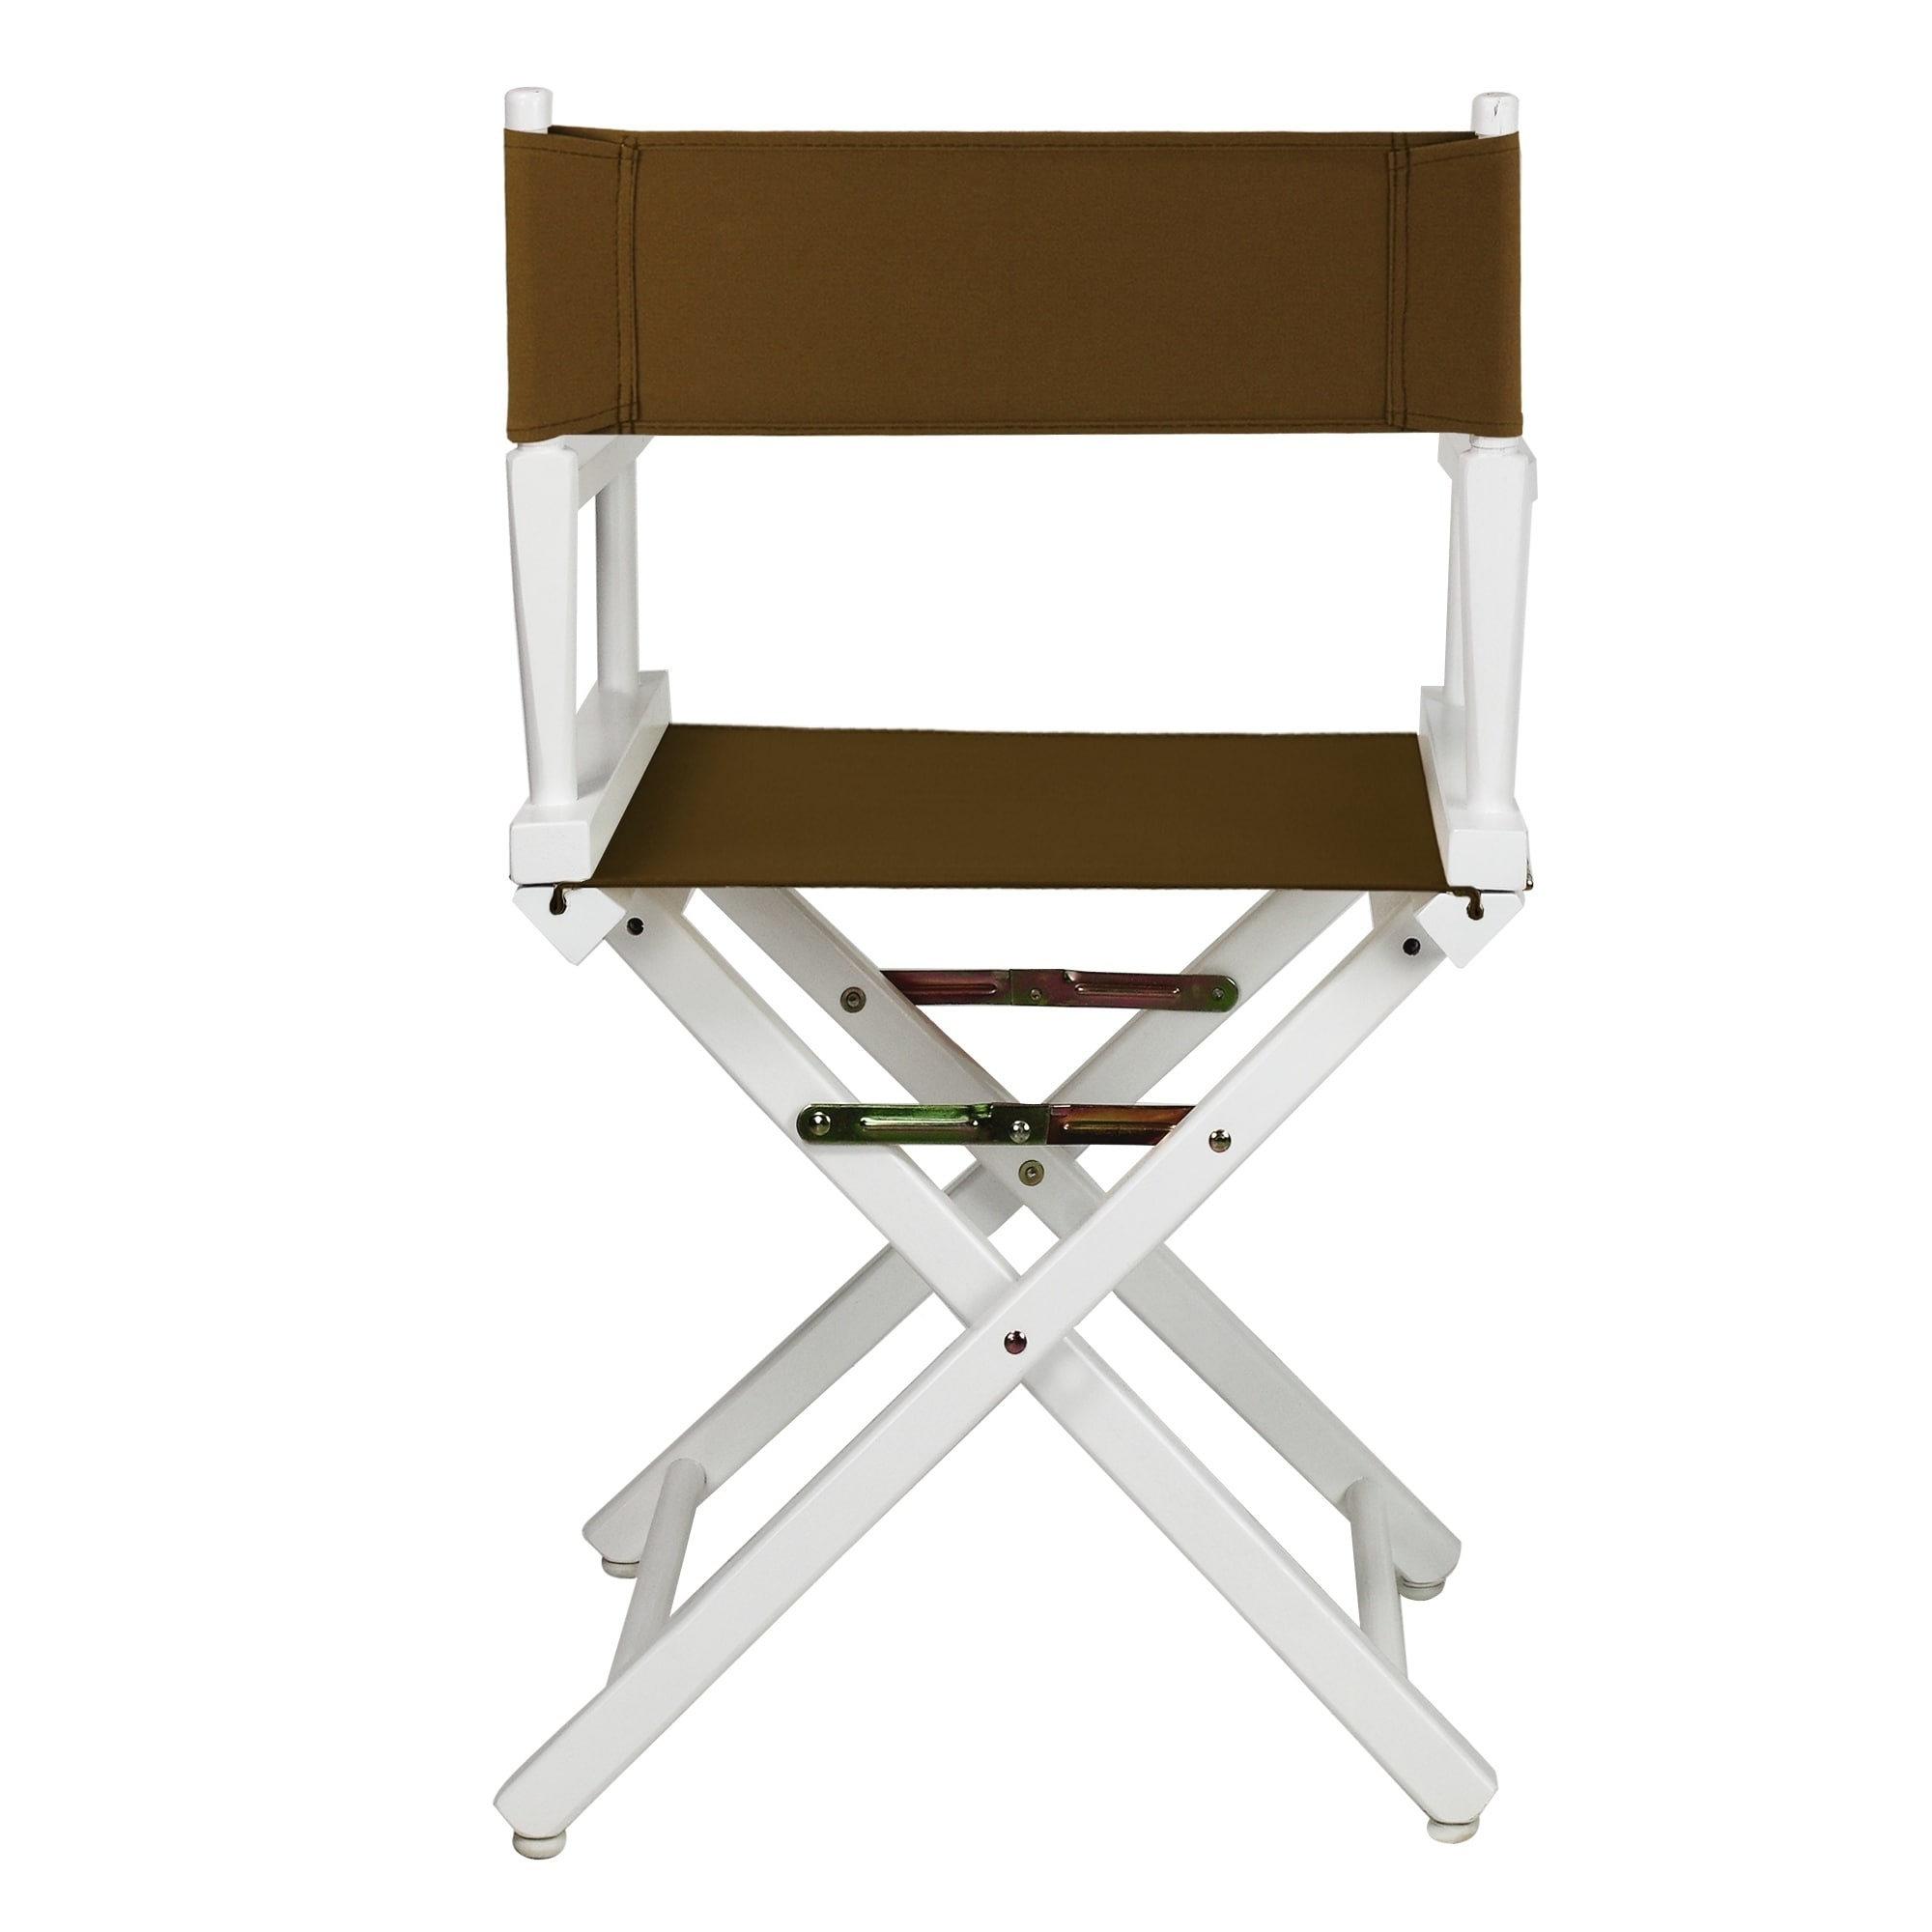 Fine 18 Directors Chair White Frame Brown Canvas Ncnpc Chair Design For Home Ncnpcorg